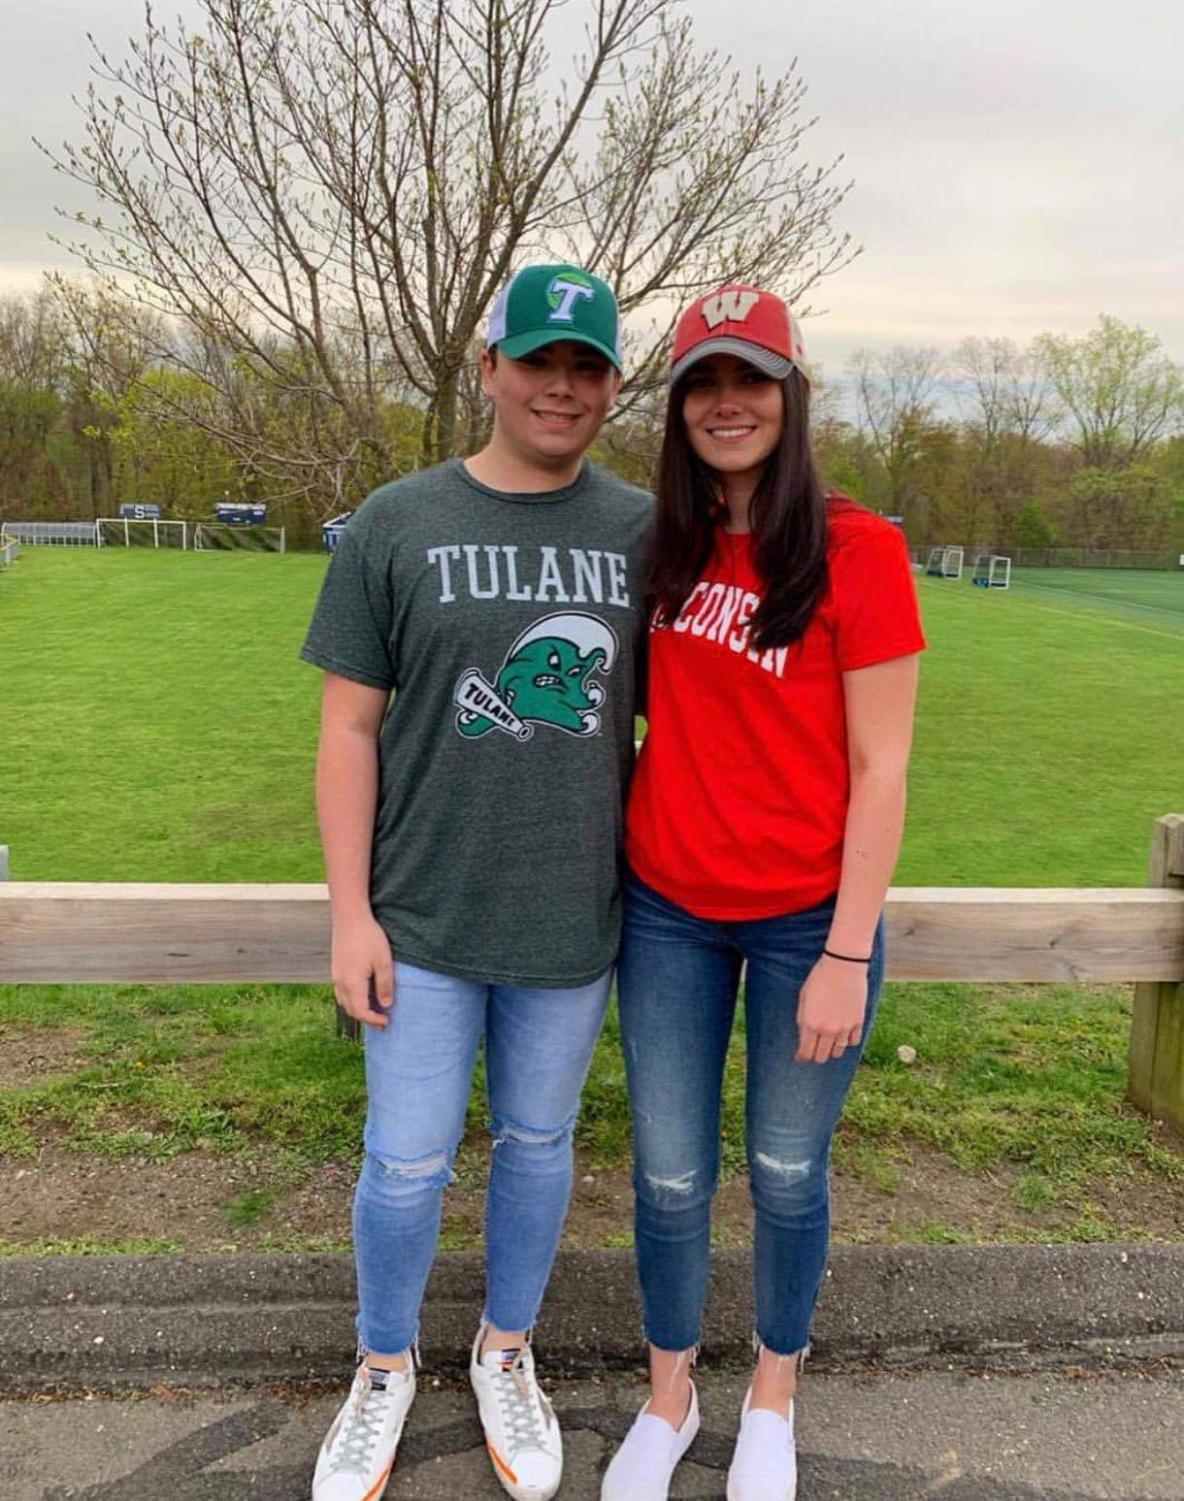 Hannah Bolandian '19 and Nicky Brown '19 pose for a picture before school on decision day. Both are decked out in the college they are attending.